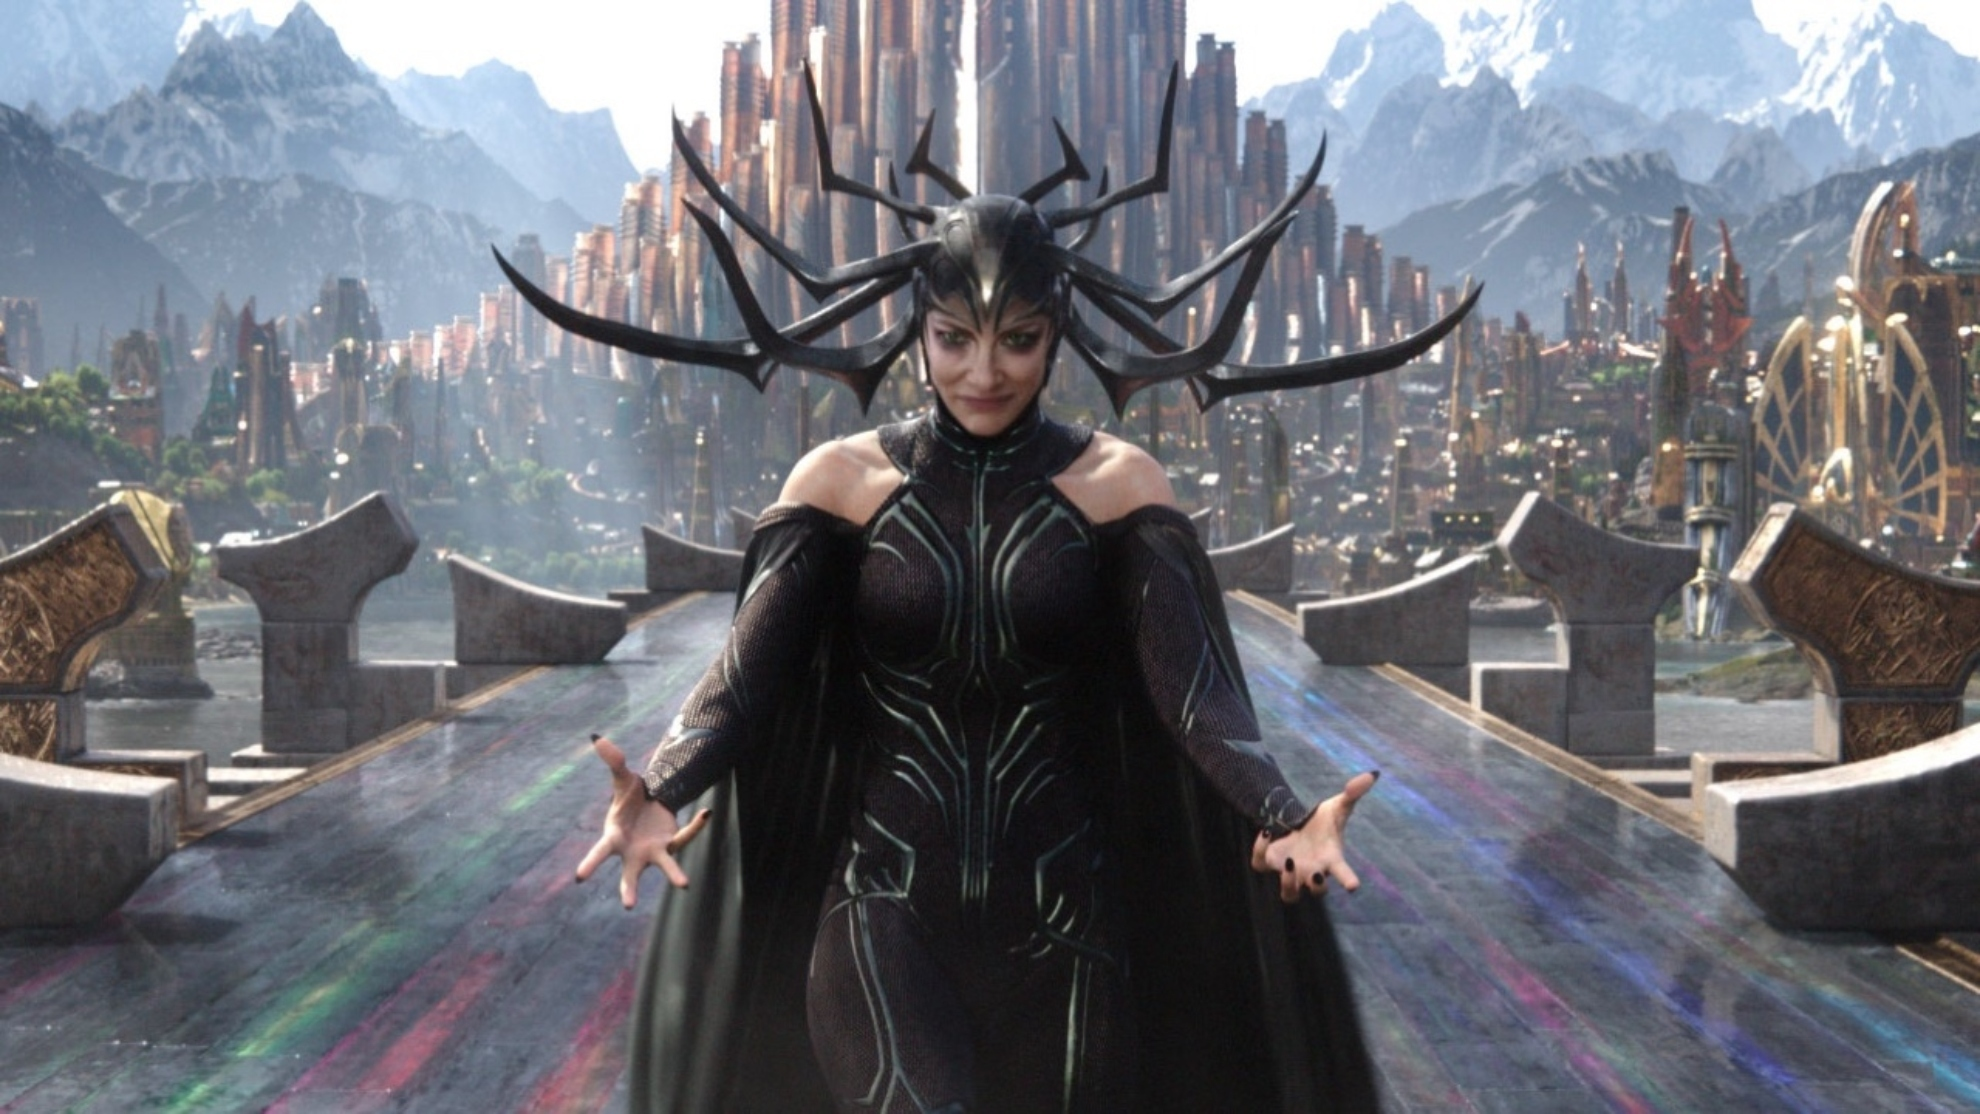 Cate Blanchett, in the role of Hela.